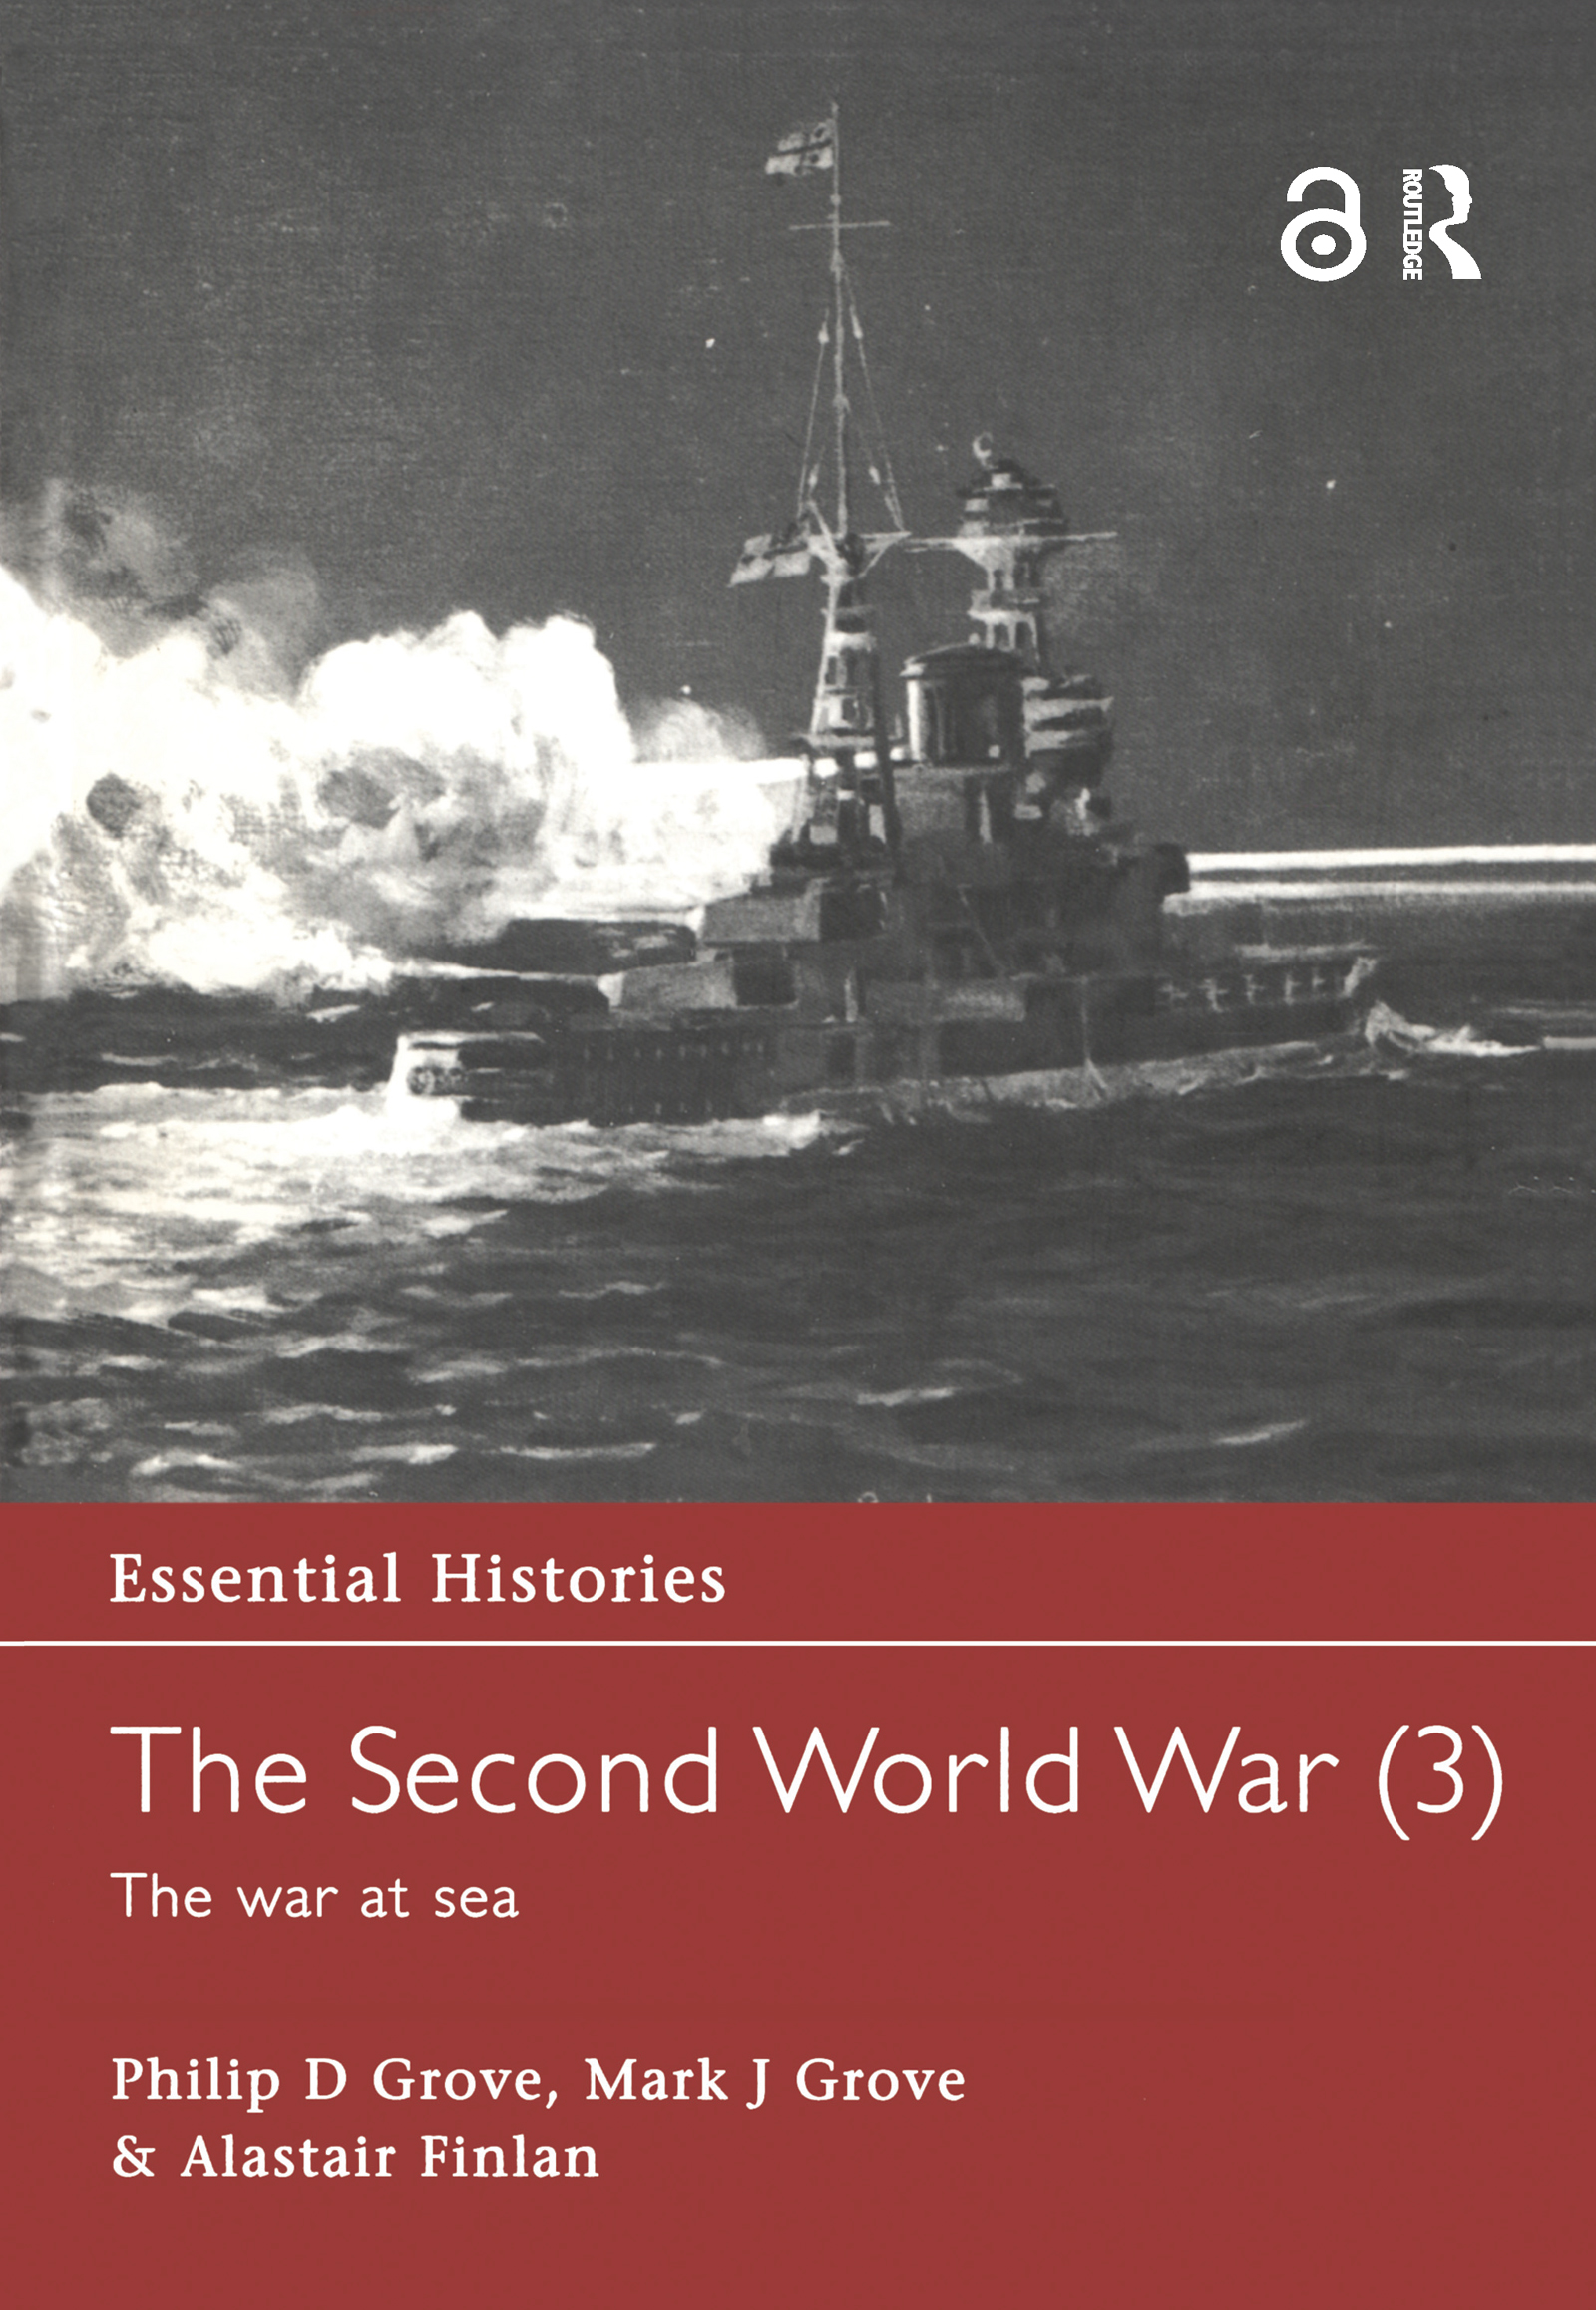 The Second World War, Vol. 3: The War at Sea book cover